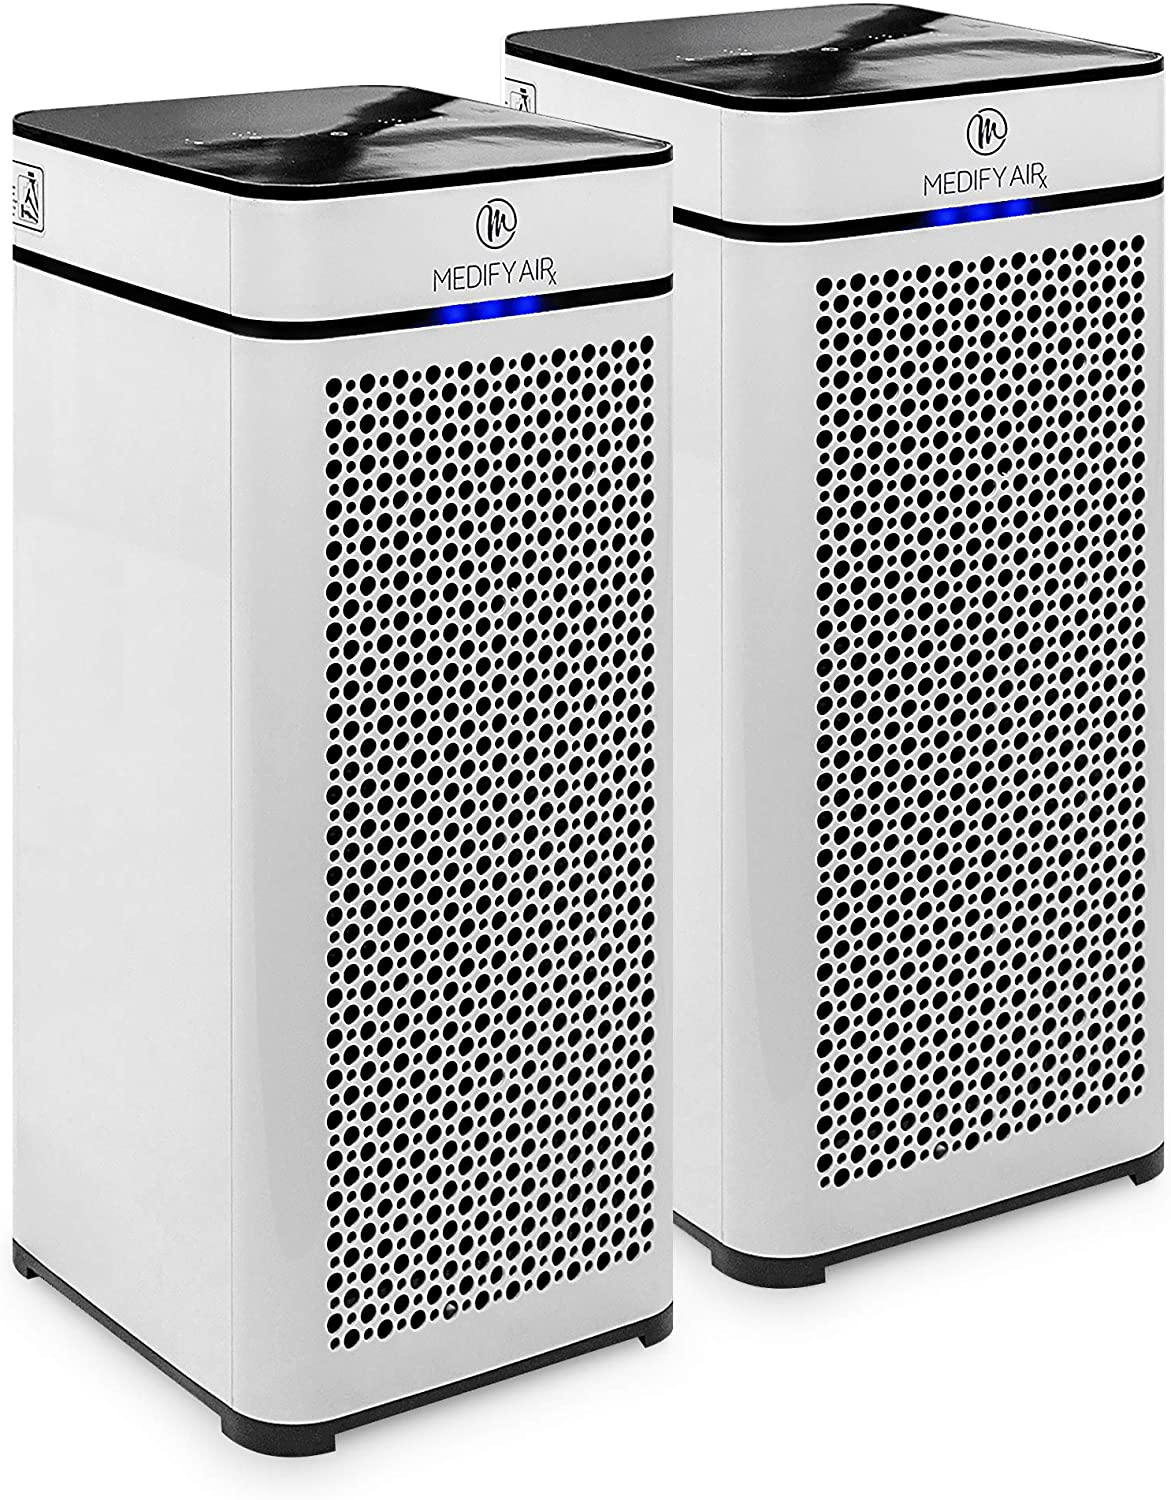 Medify MA-40 2.0 Medical Grade Filtration H13 True HEPA for 840 Sq. Ft. Air Purifier, 99.97% | Modern Design - White (2-Pack)